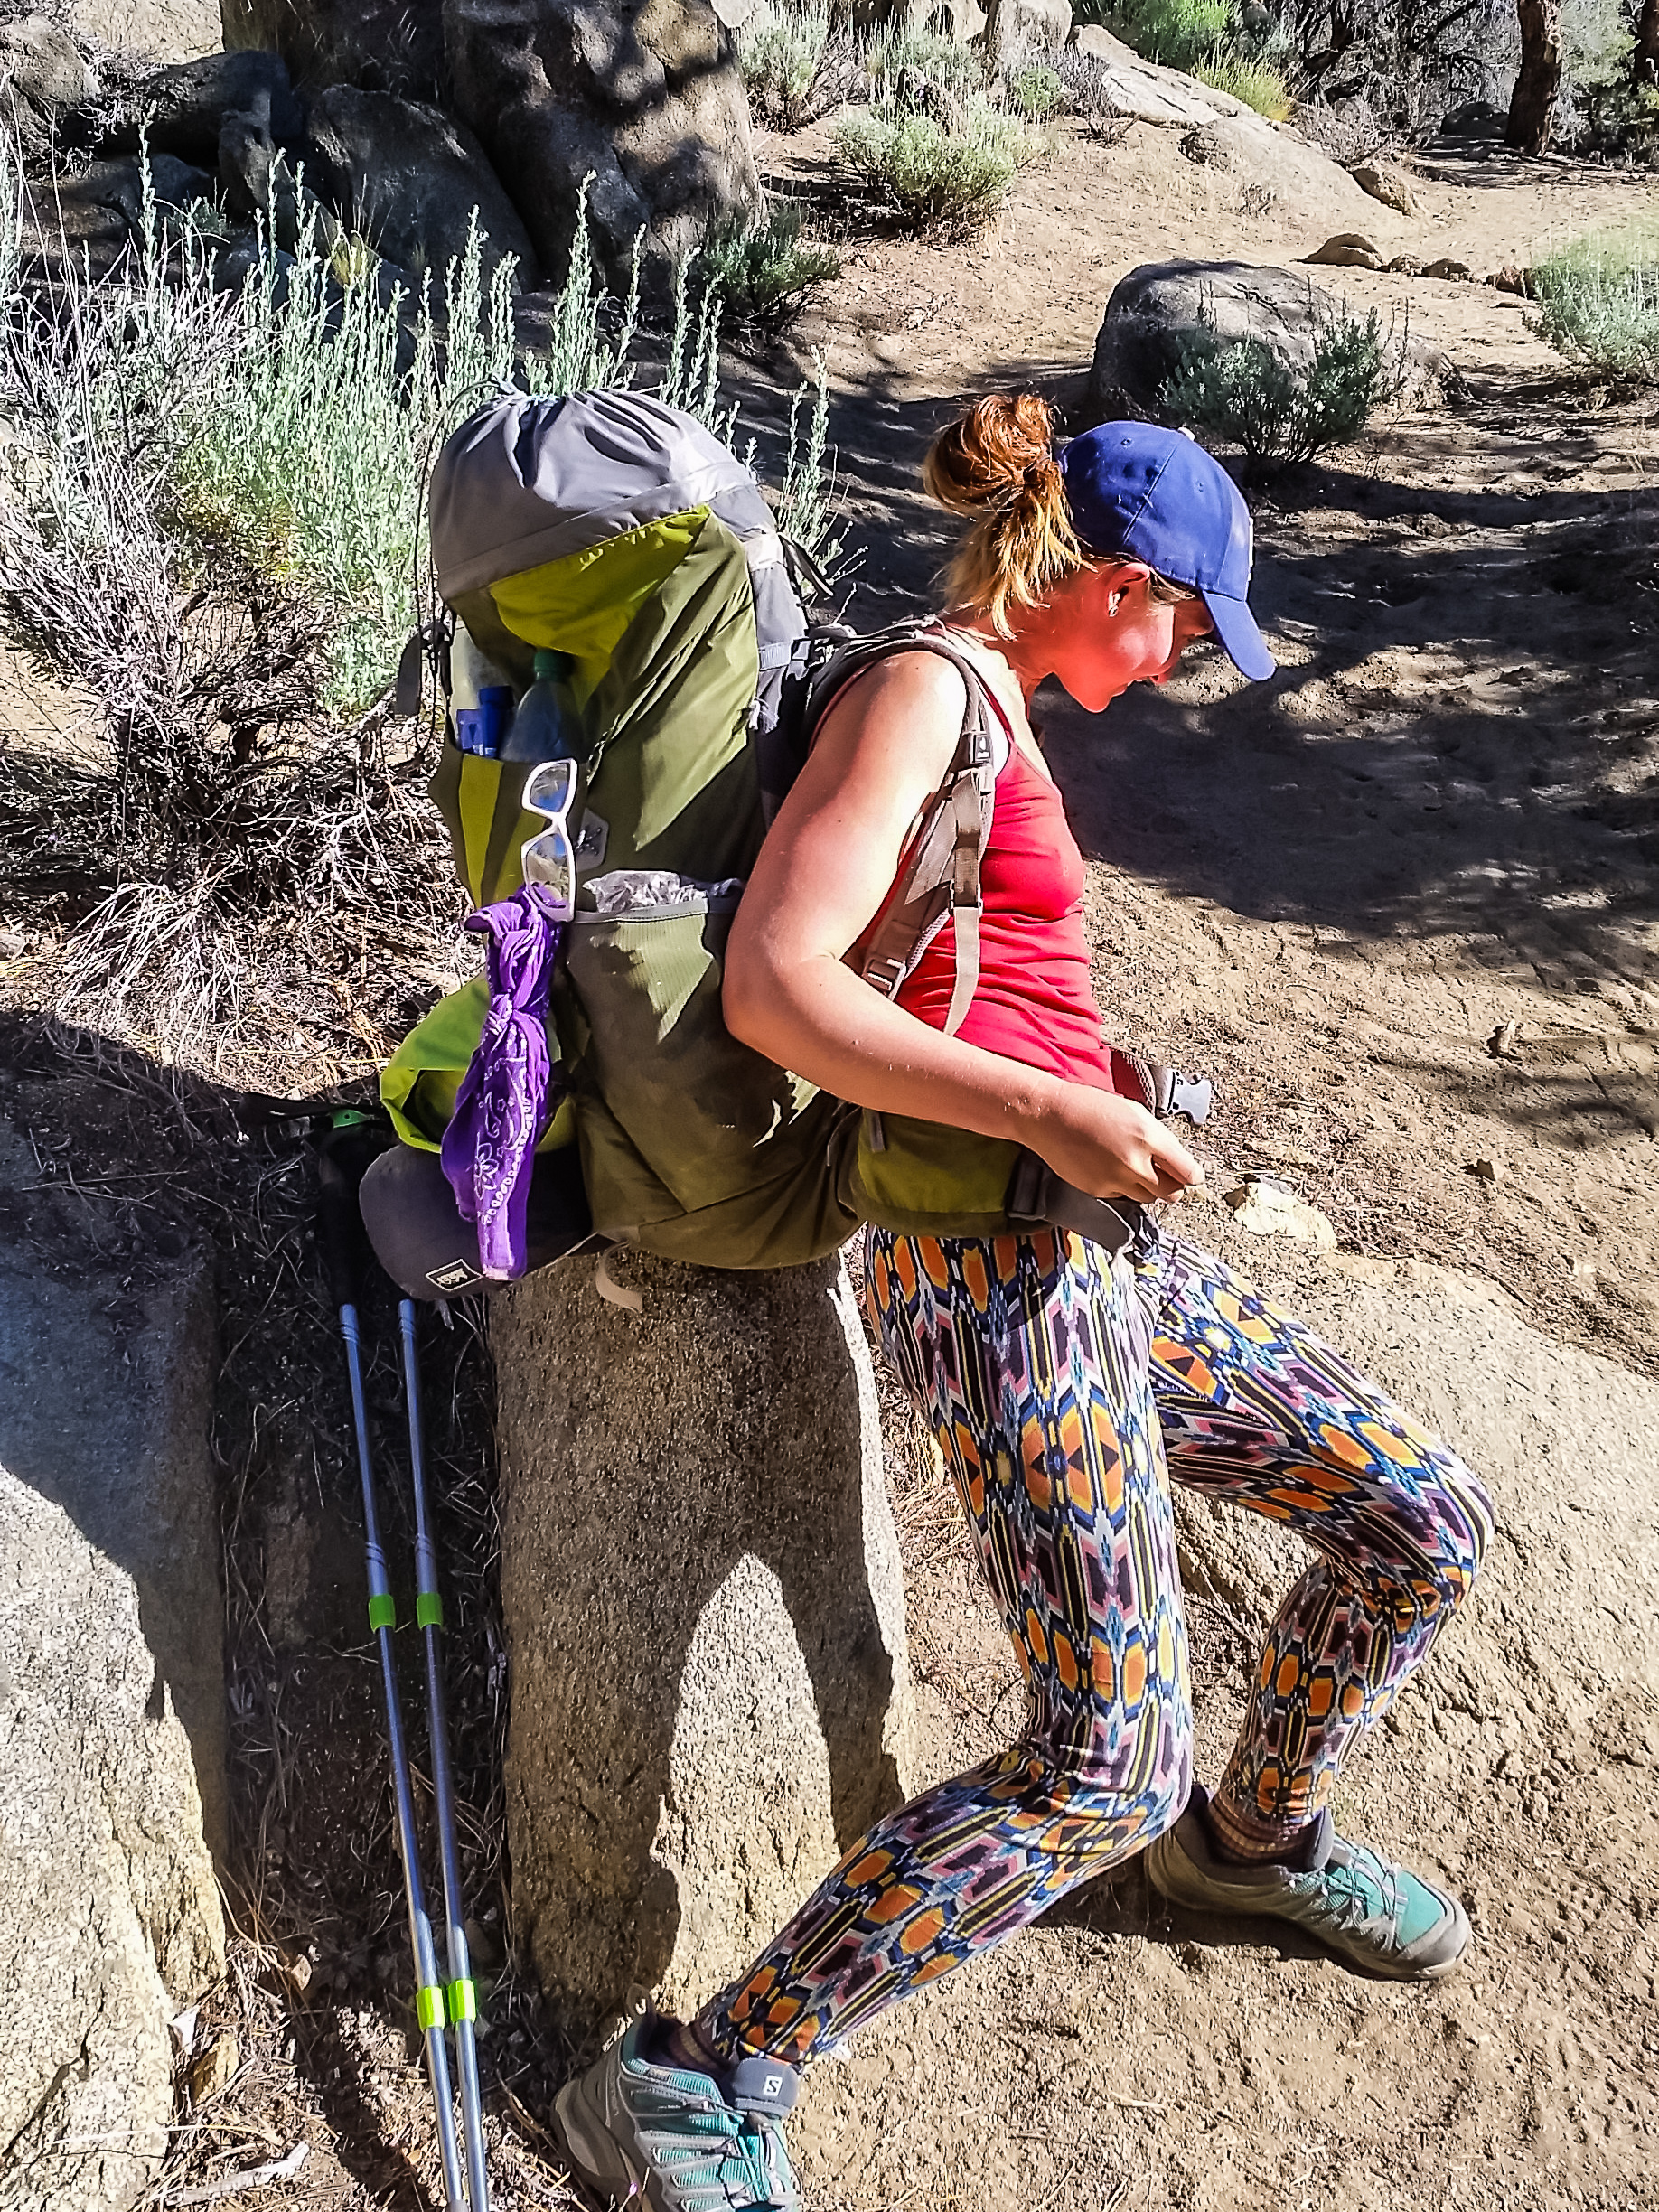 Moontrain had one of the biggest packs heading into the Sierra, a 12 day resupply